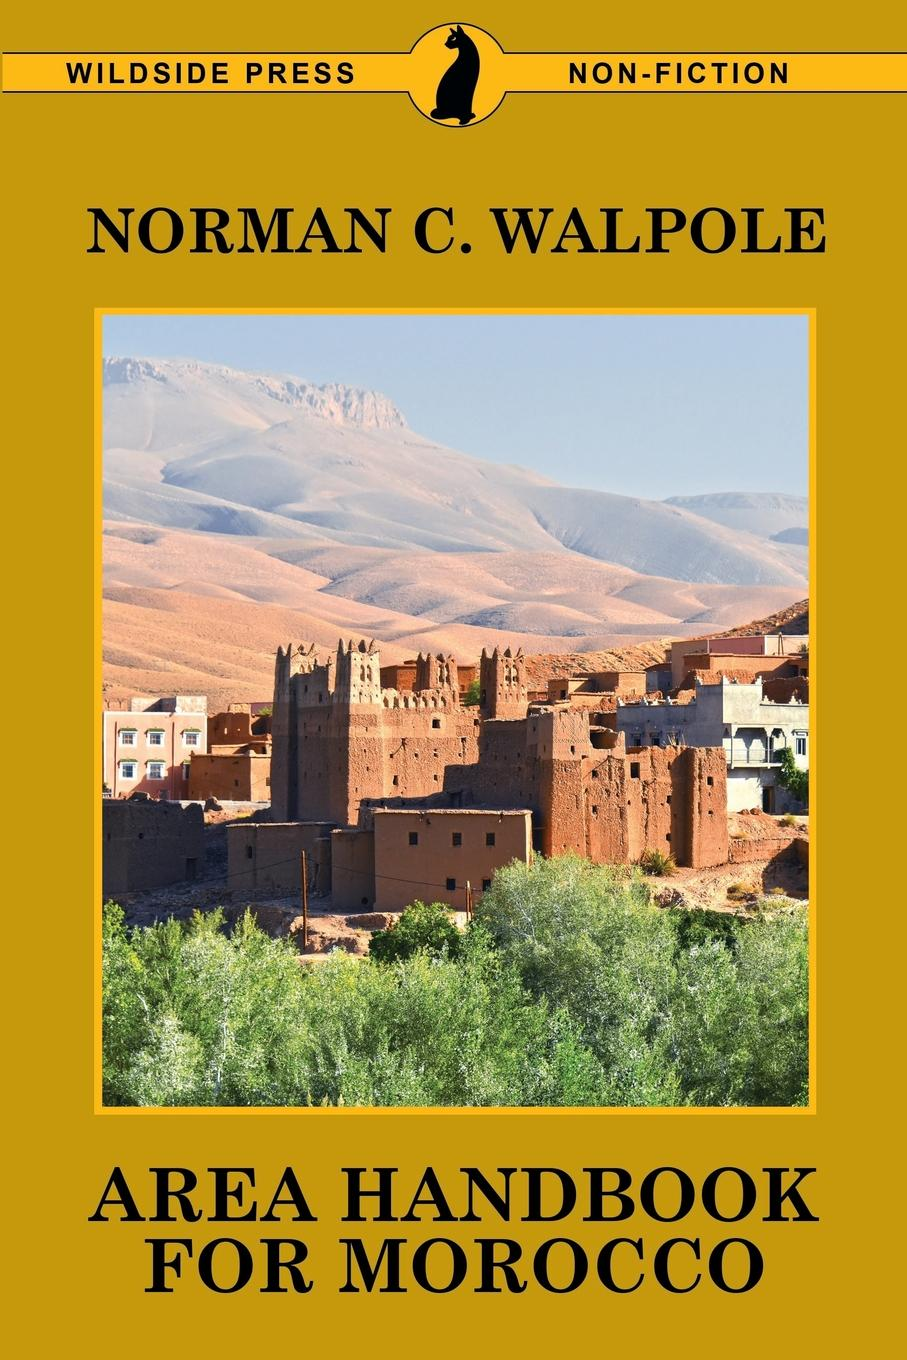 Norman C. Walpole Area Handbook for Morocco